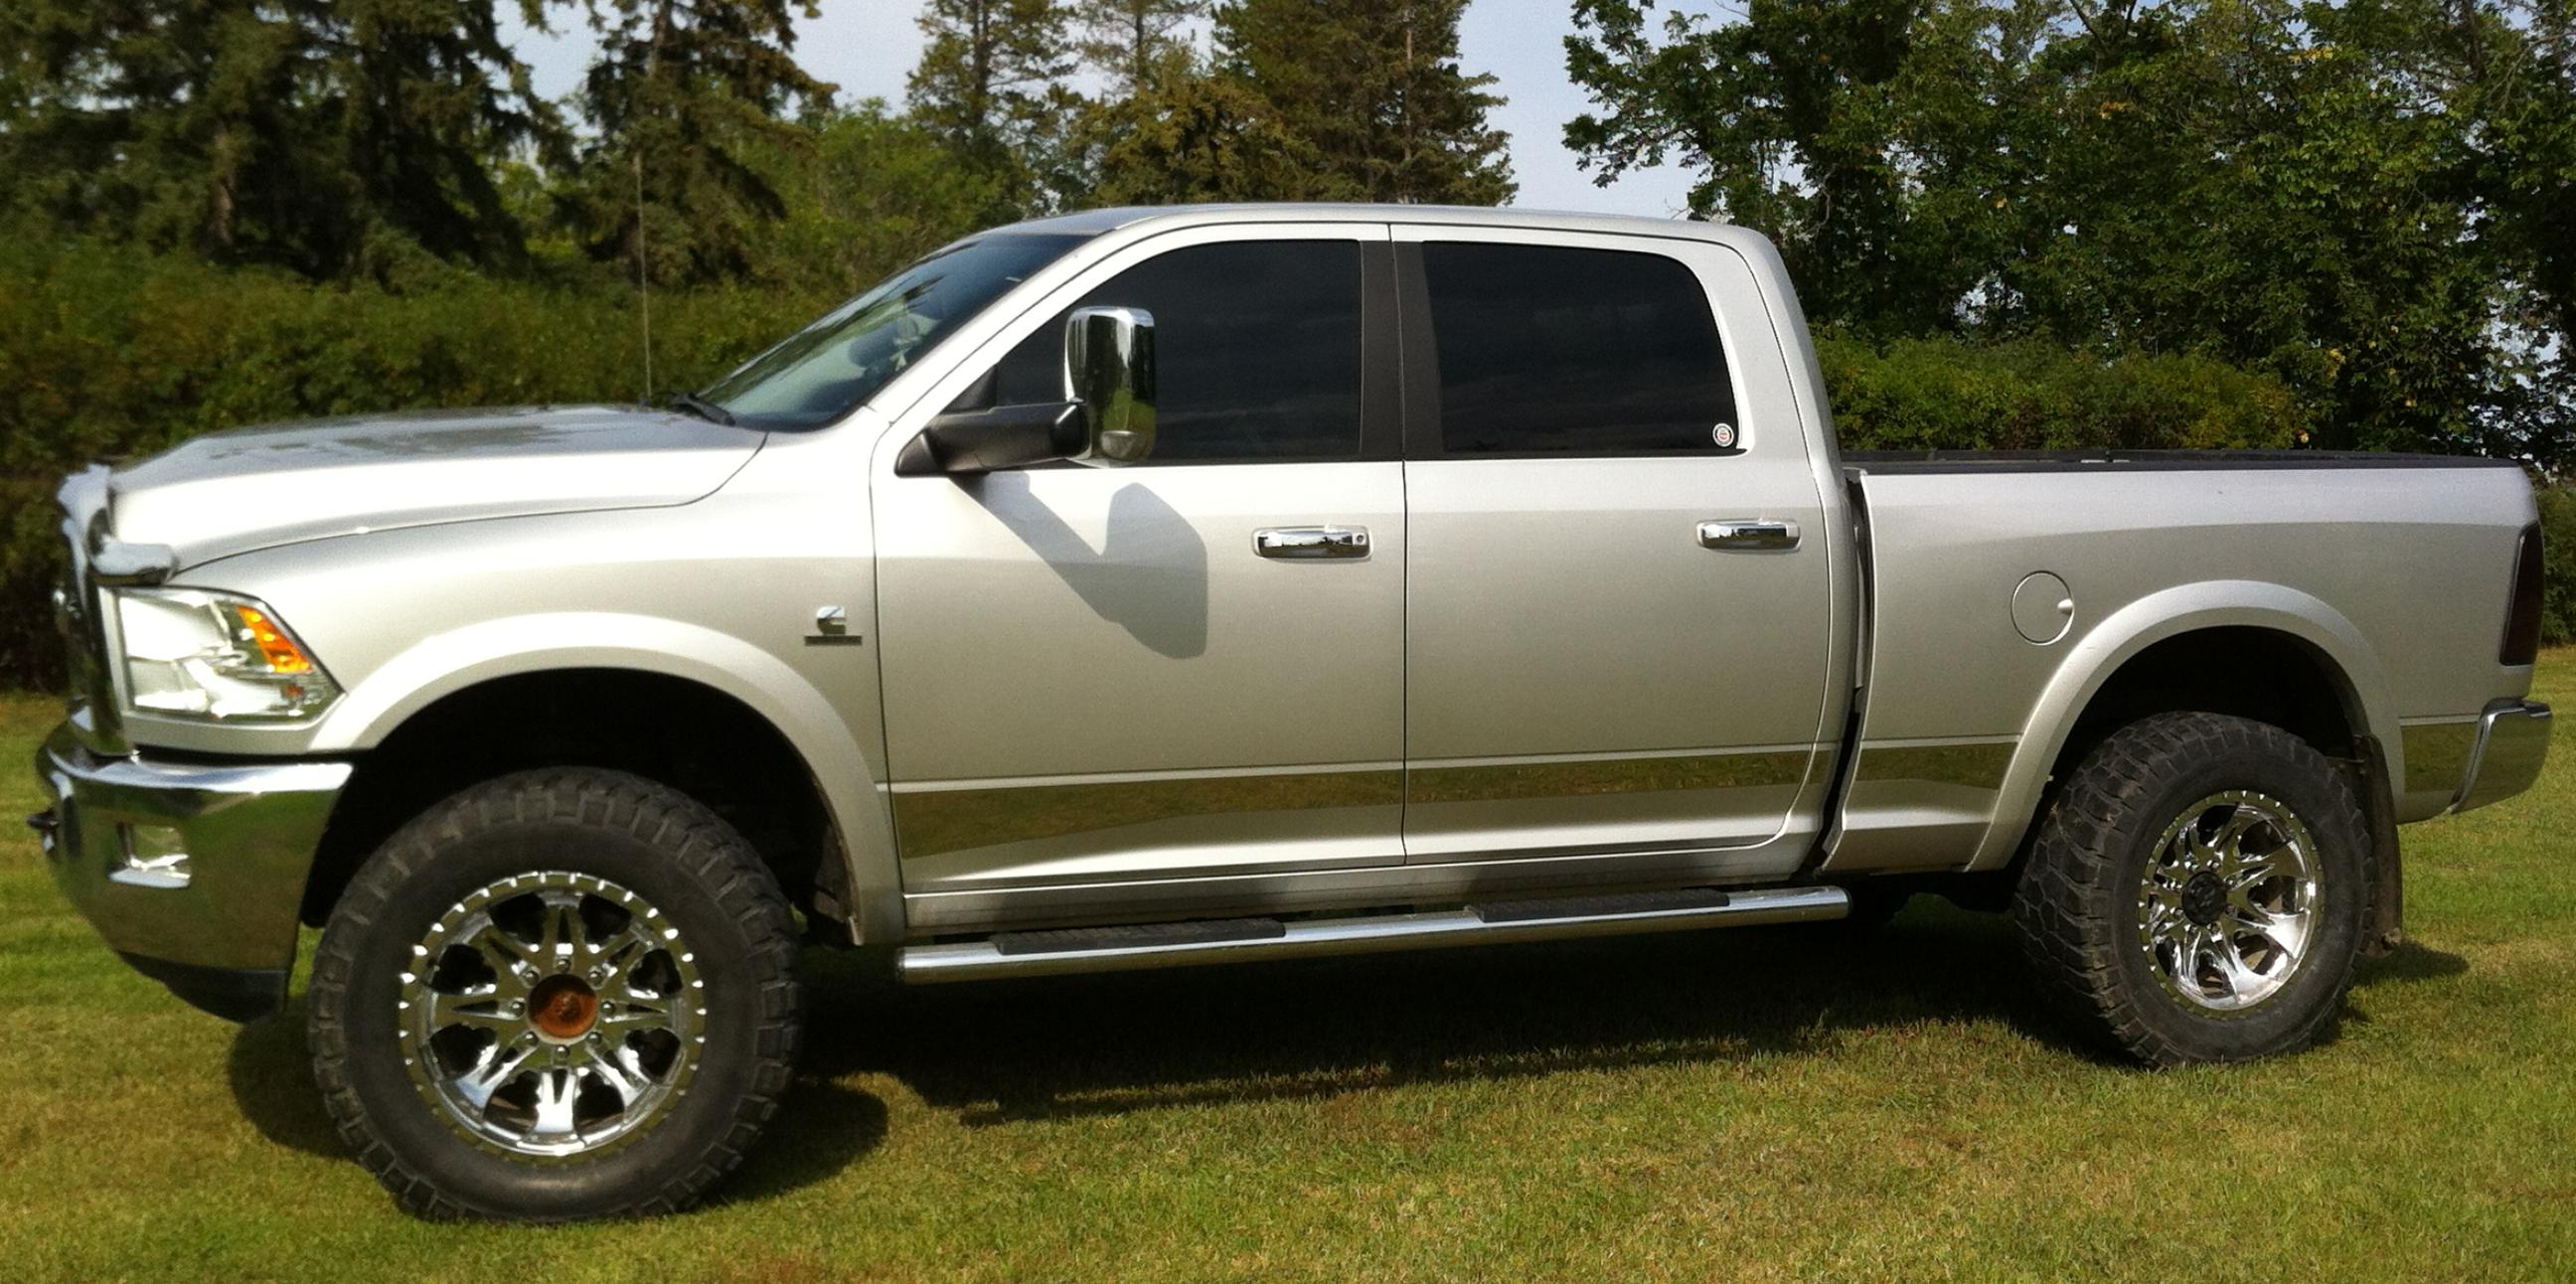 Dodge ram 3500 crew cab view all dodge ram 3500 crew cab at cardomain - Crew cab dodge ram ...